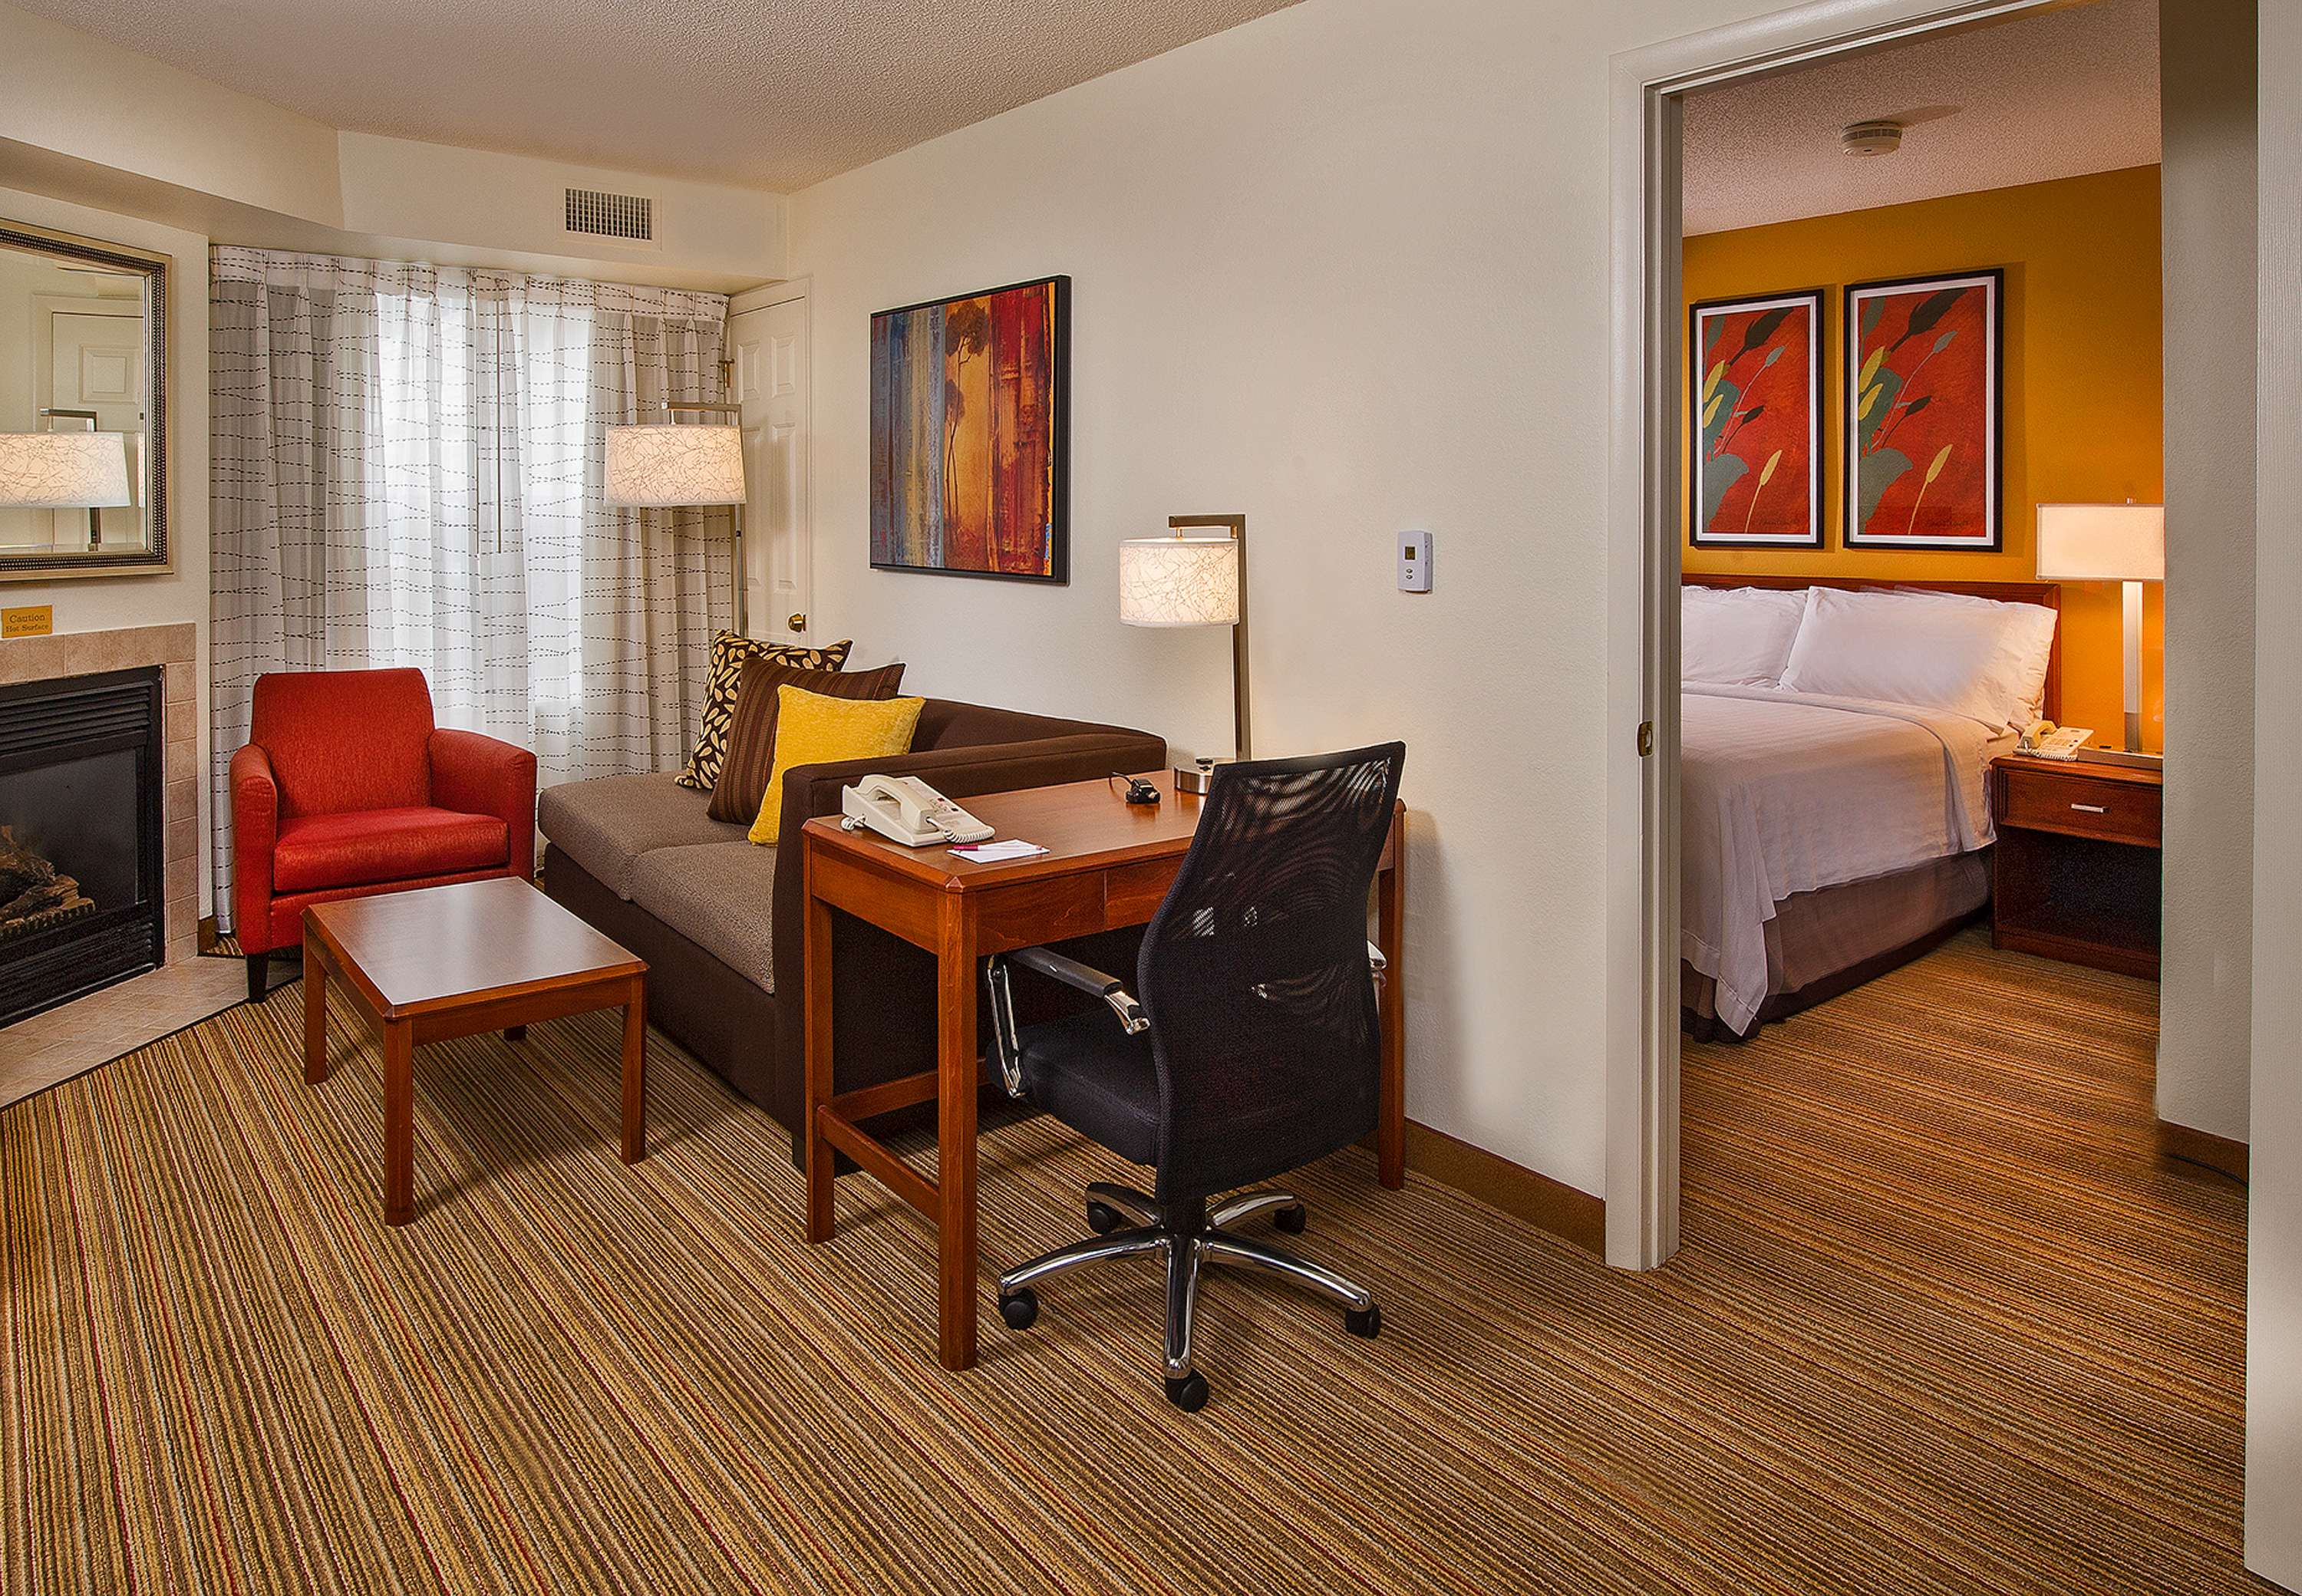 Residence Inn by Marriott Raleigh Cary image 5